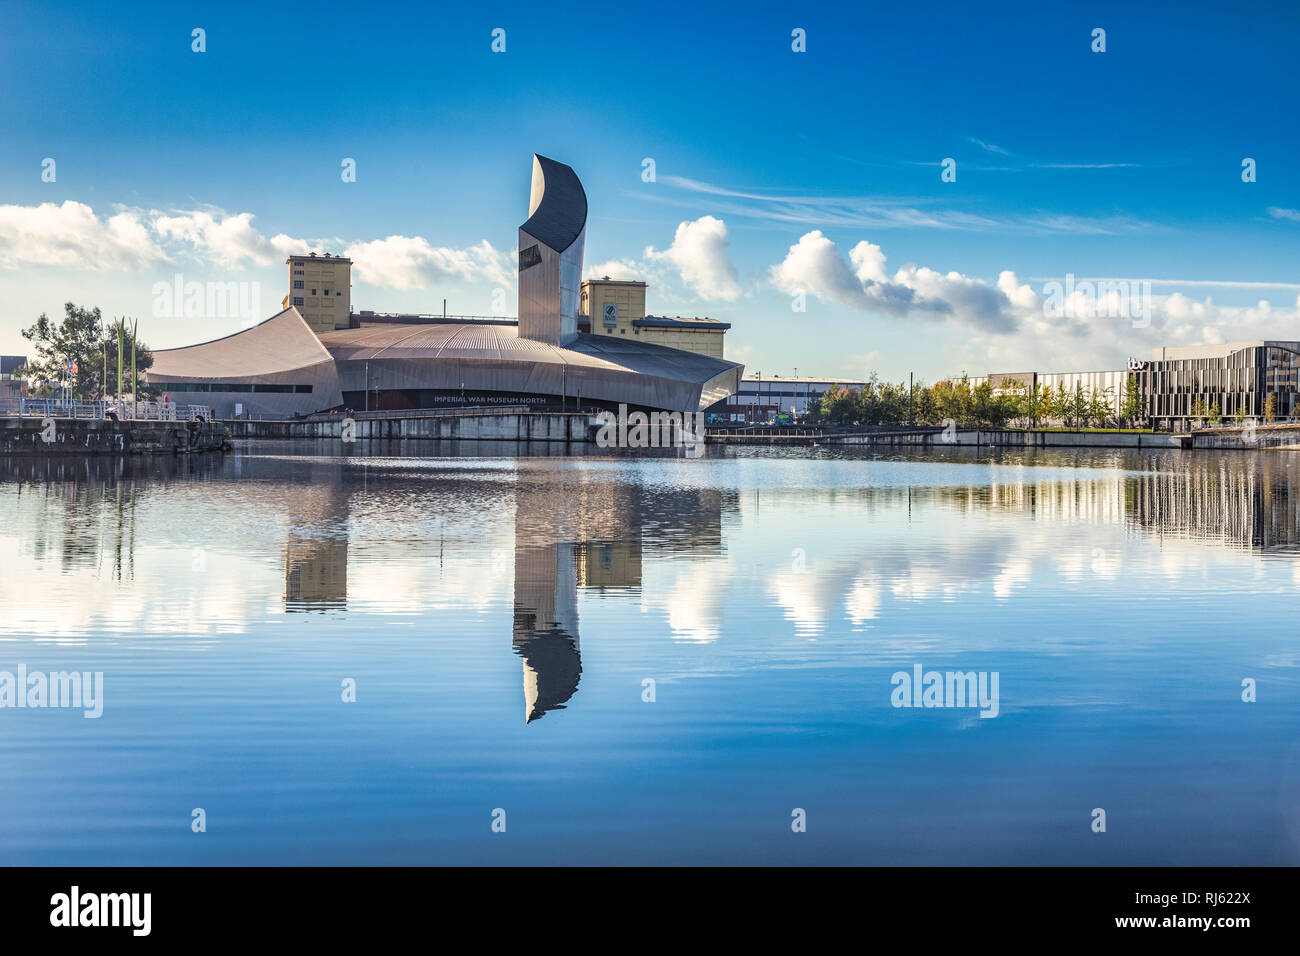 2 November 2018: Salford Quays, Manchester, UK - Imperial War Museum North, reflected in the Manchester Ship Canal, on a beautiful autumn day with... - Stock Image